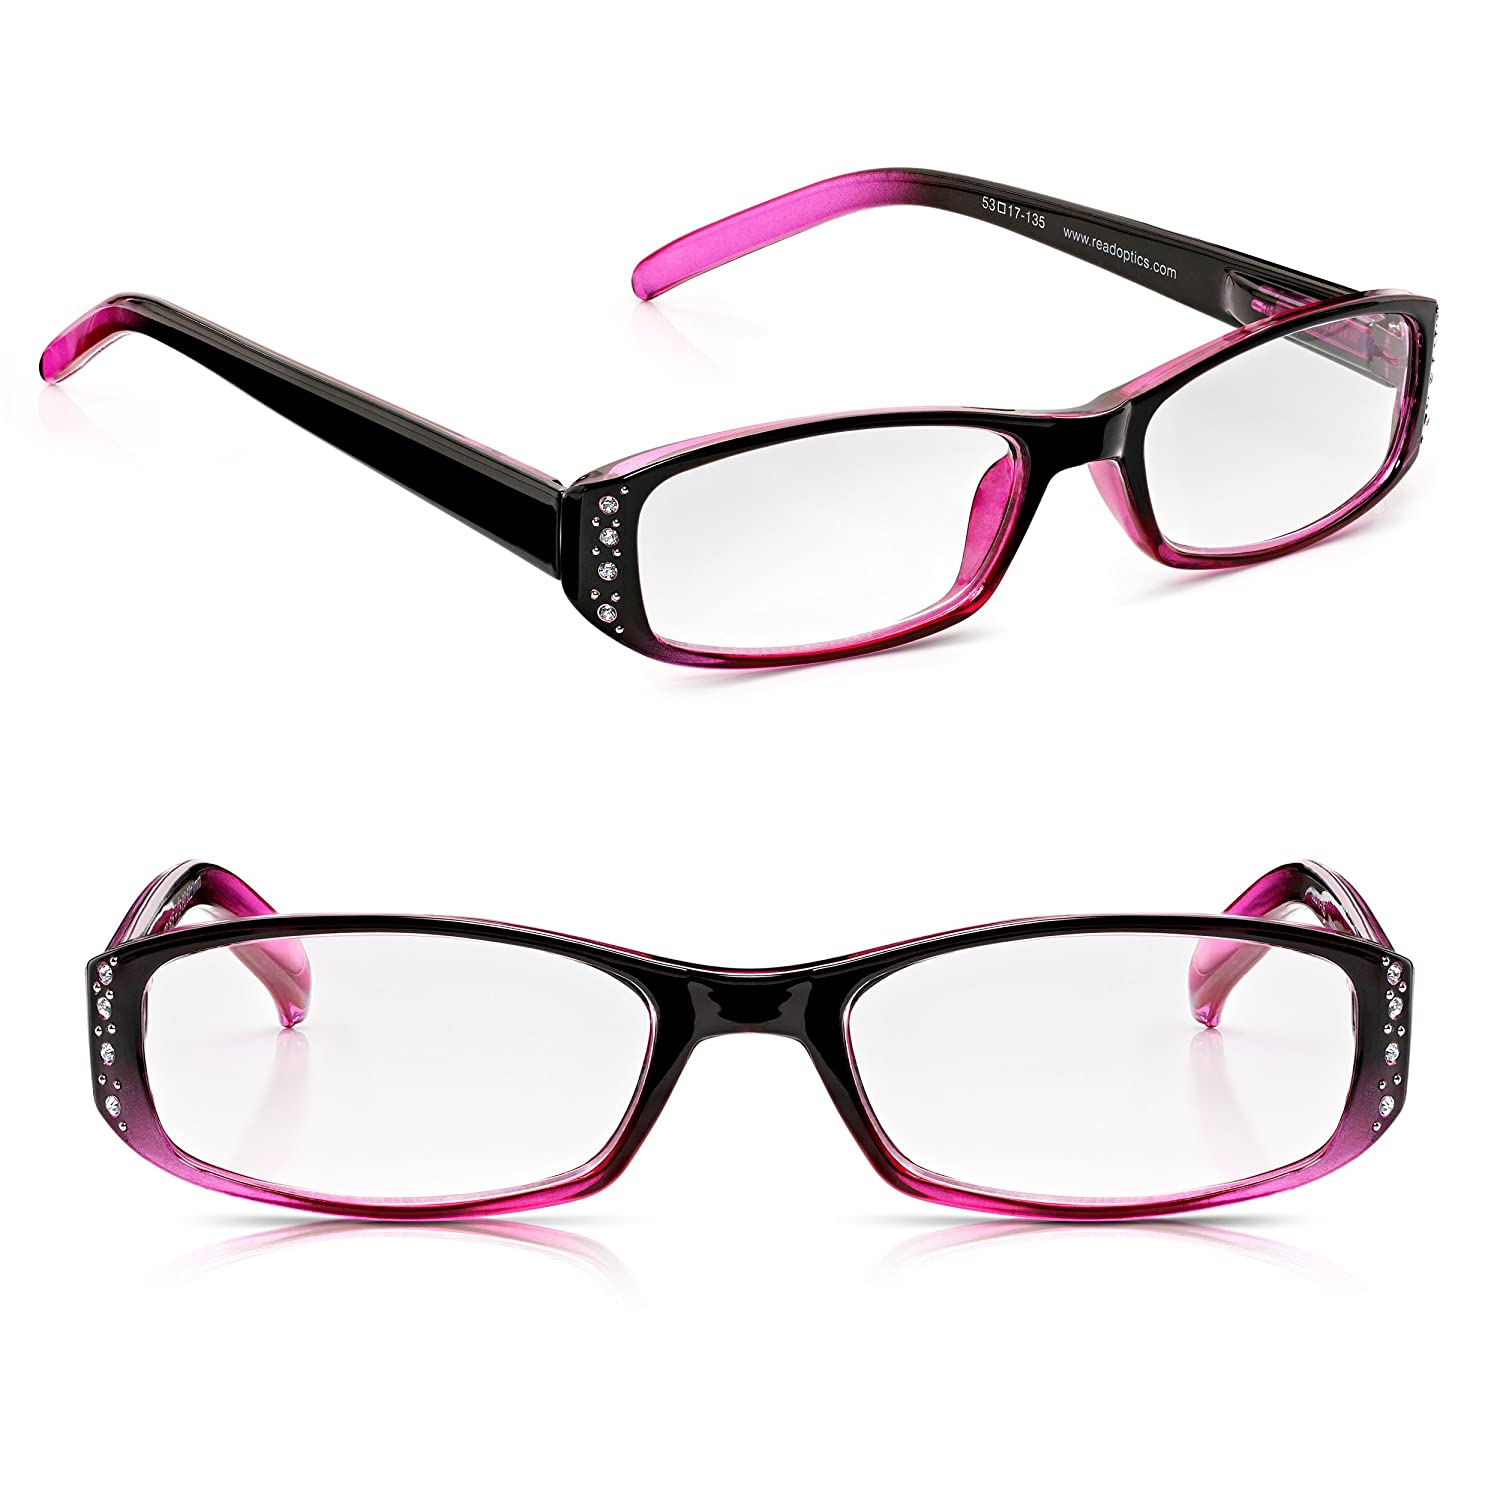 Read Optics Diamante Ladies Reading Glasses 1.5: Rhinestone Inset Womens Spectacles with Black & Red Frame. +1 to +3.5 Non-Prescription Optical Quality Lenses. Durable, Lightweight Polycarbonate